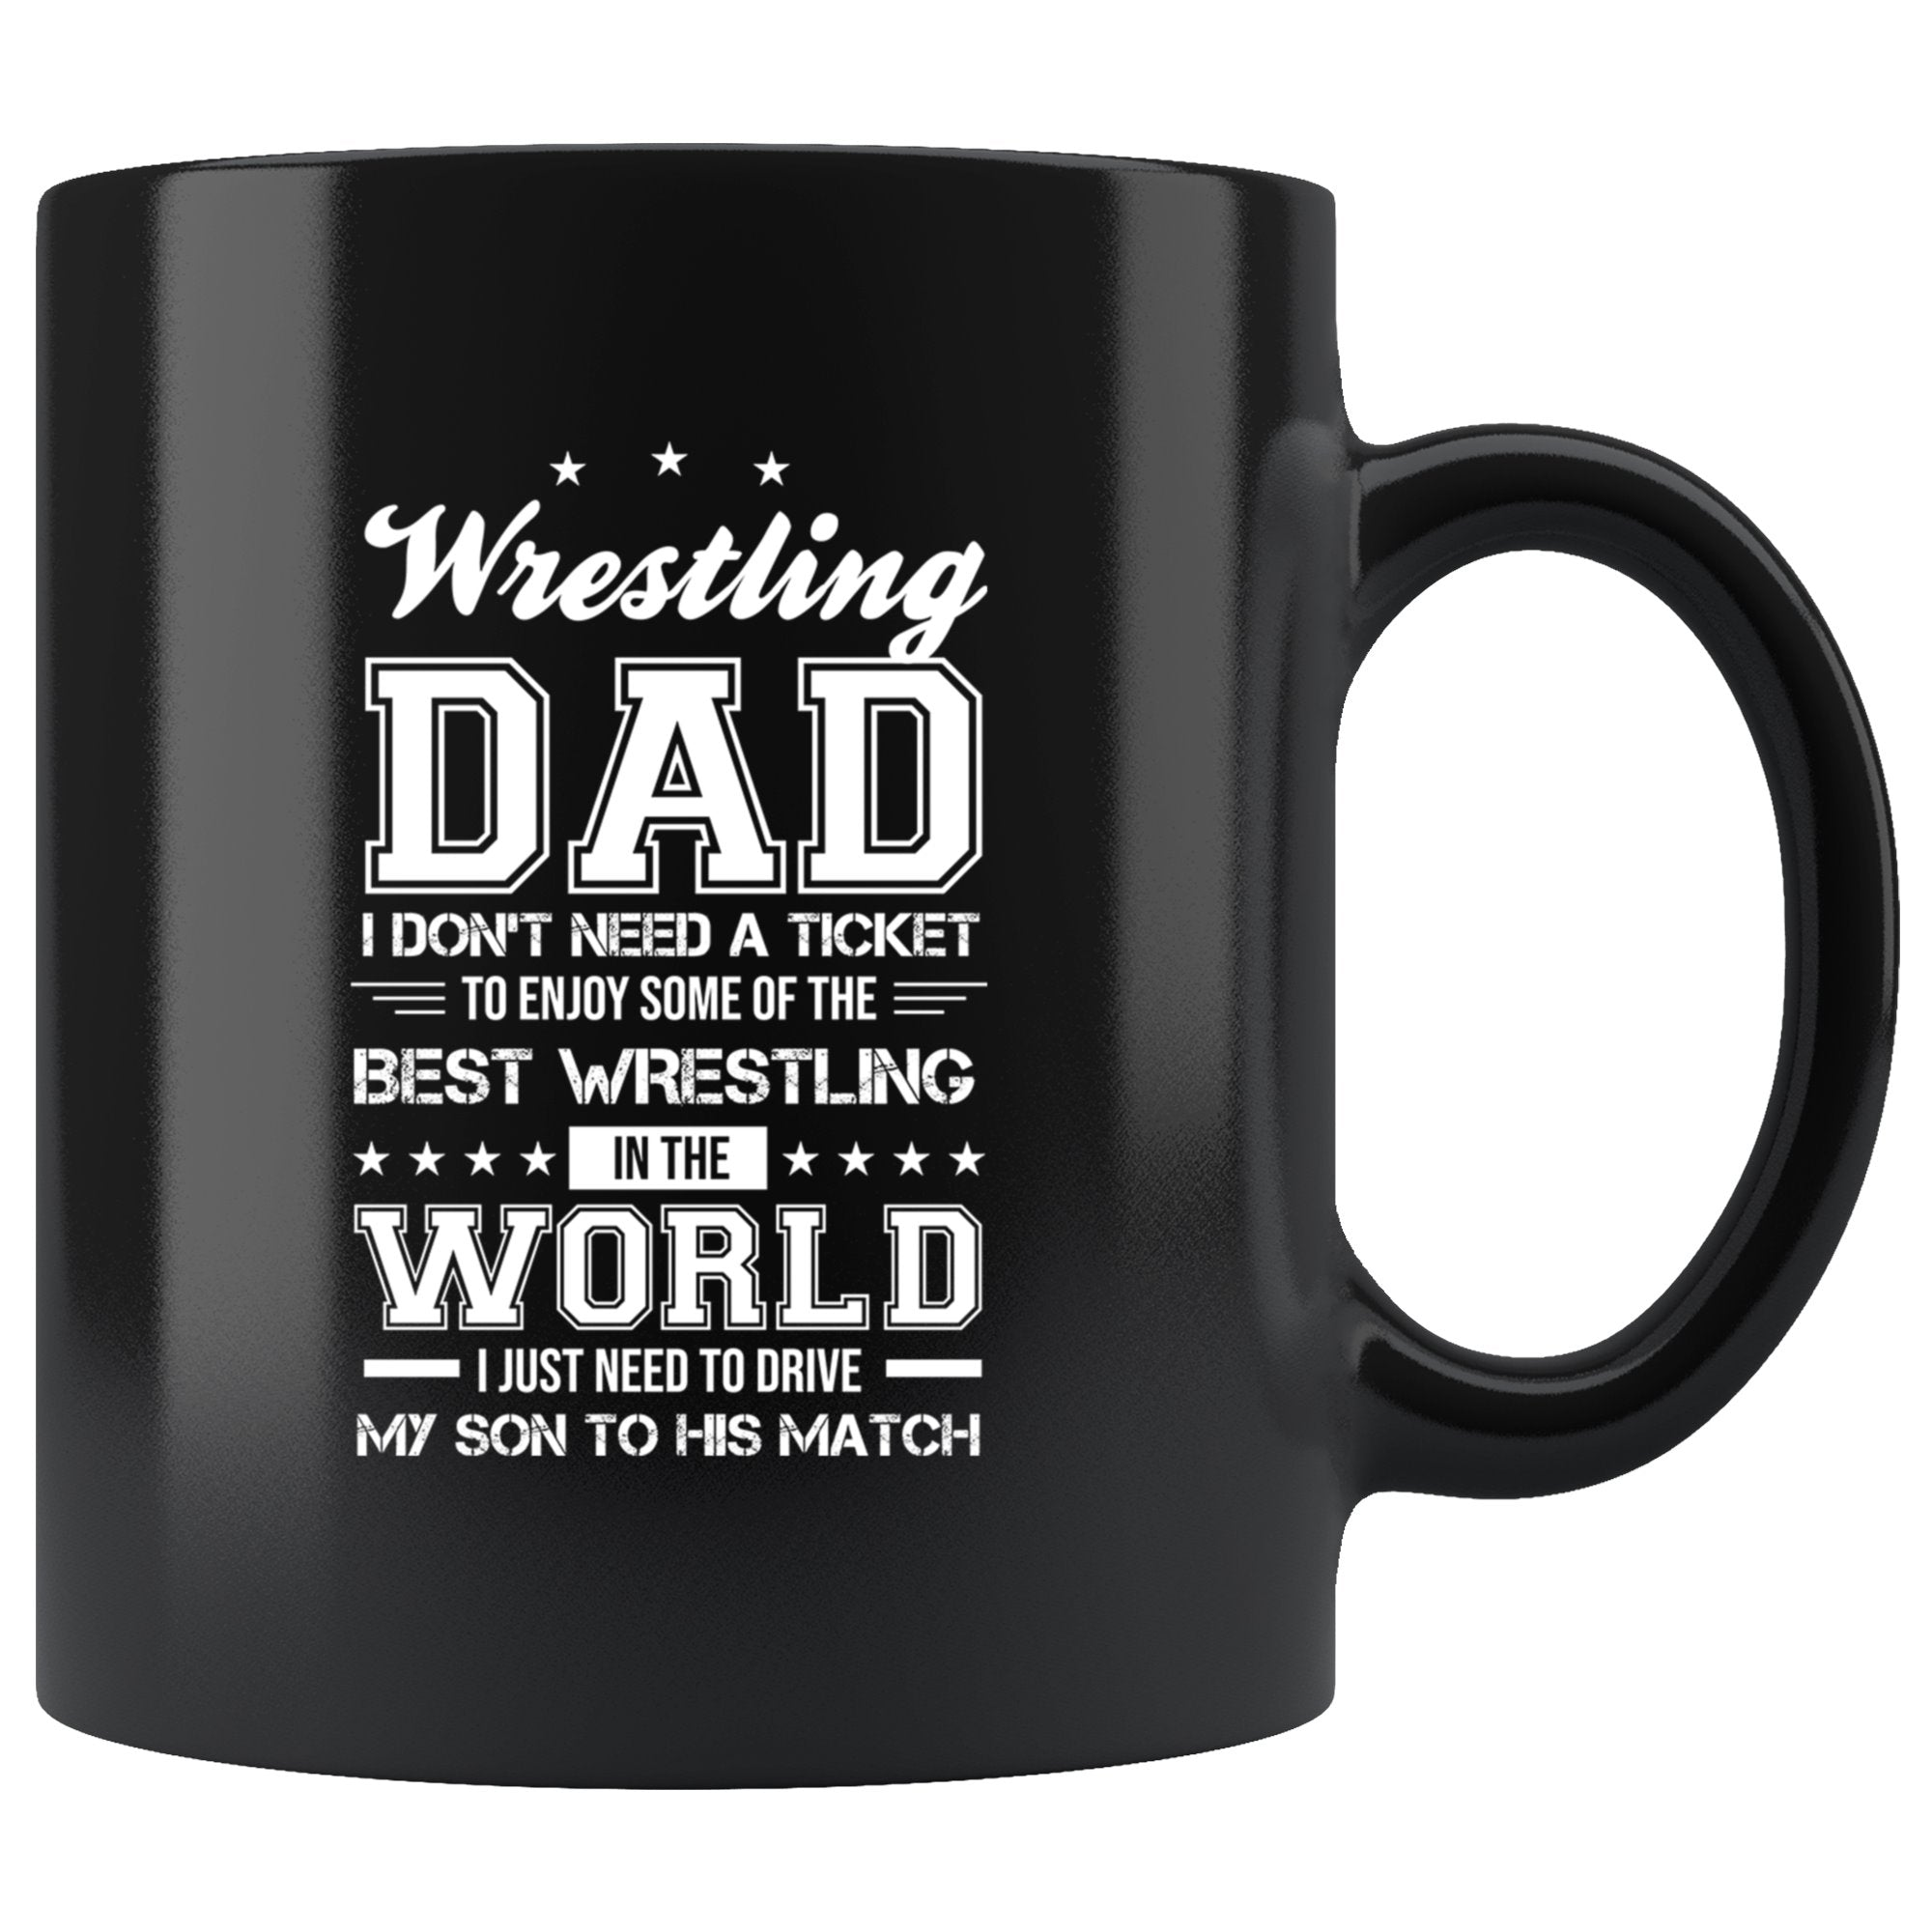 I Don't Need A Ticket To Enjoy The Best Wrestling Dad Coffee Mug